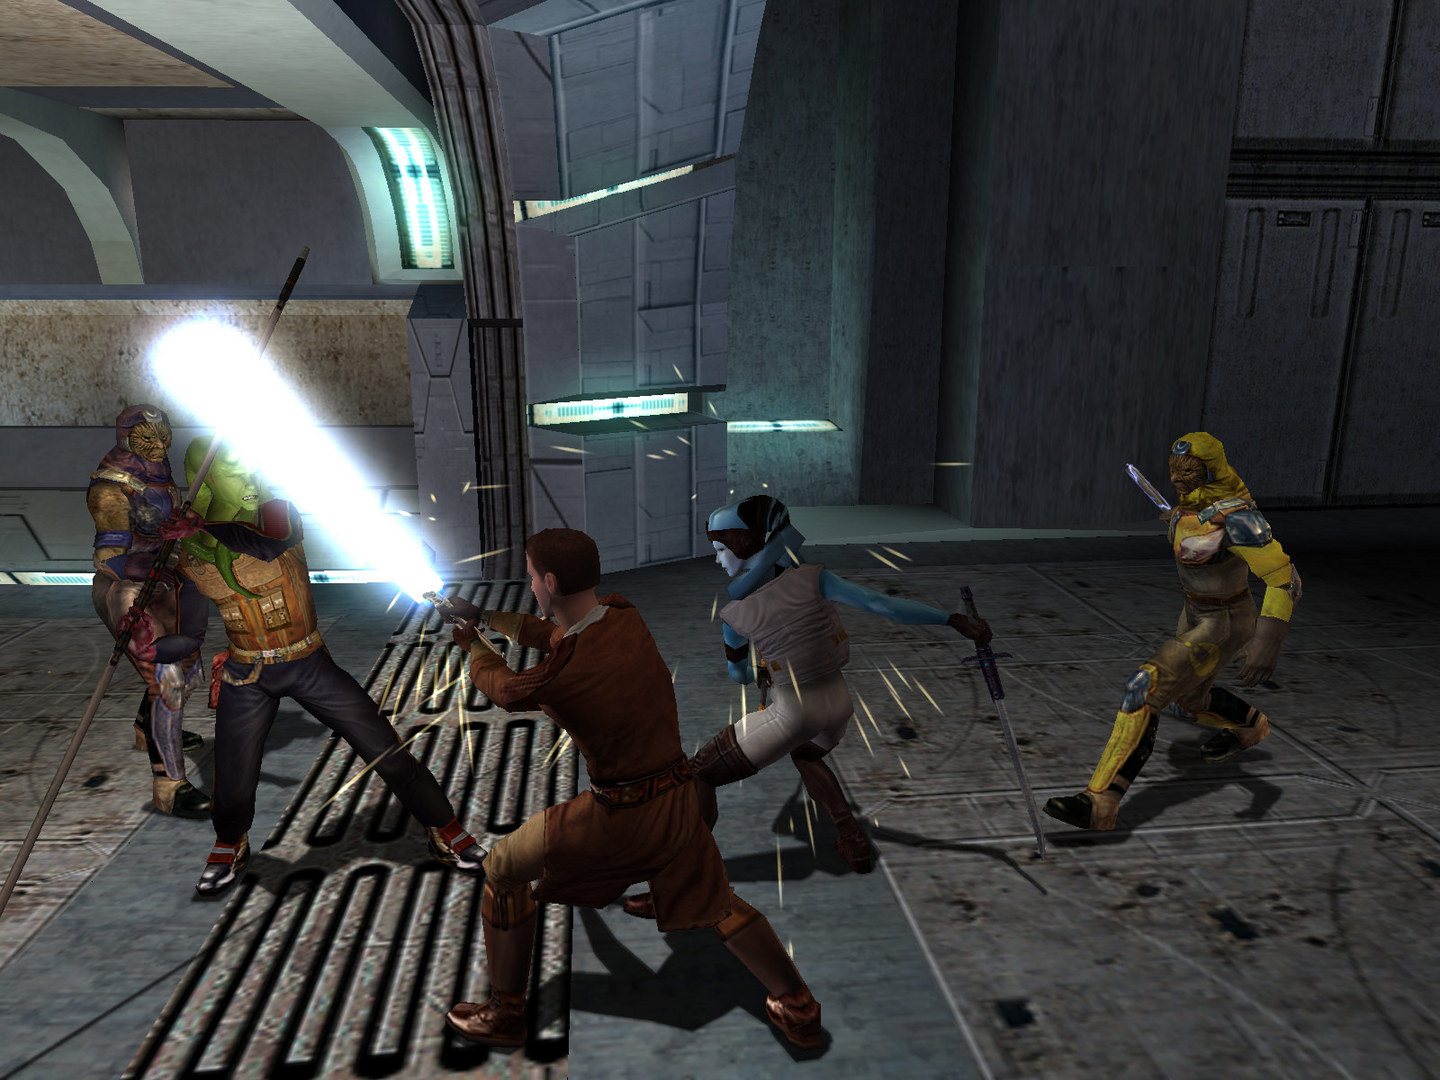 star wars knight of the old republic download free gog pc games